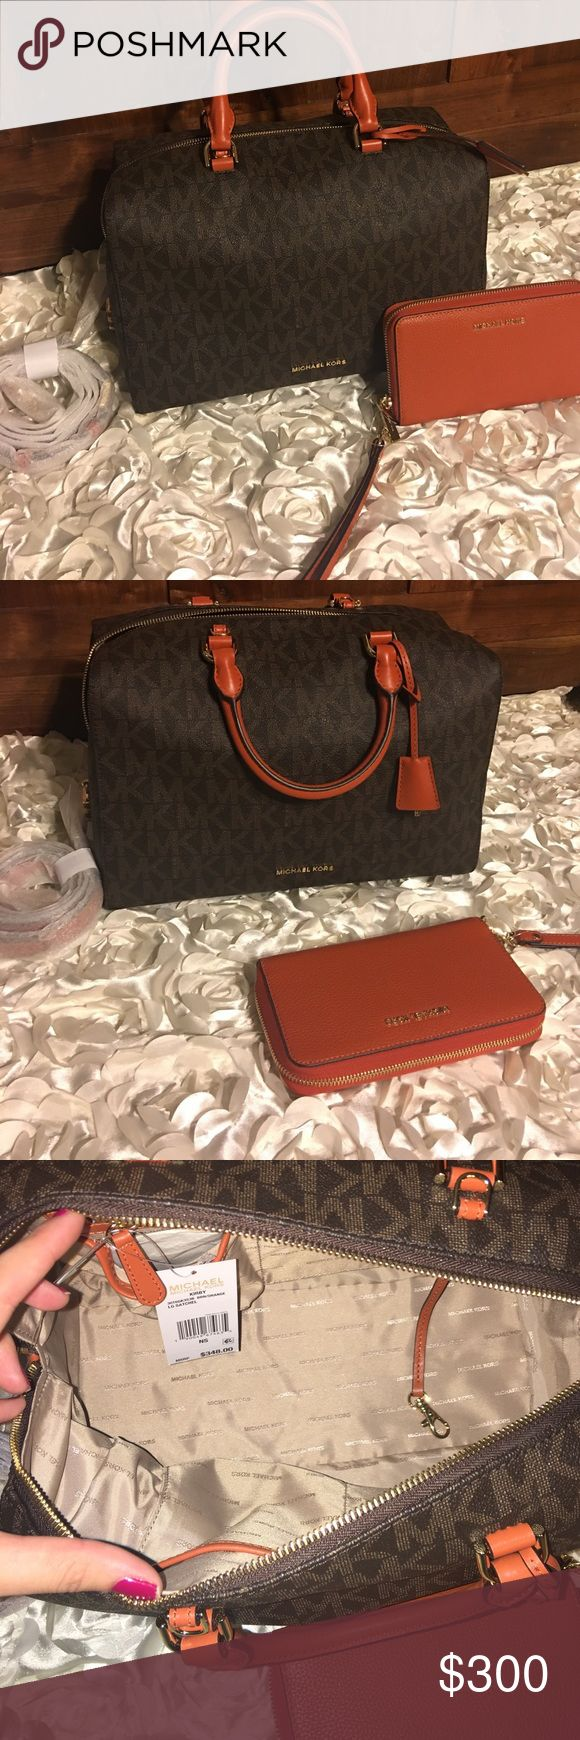 """NWT Michael Kors KIRBY SET THE WHOLE SET IS NWT. Kirby is brown & orange with golden hardware. Wallet is orange with golden hardware. Purse is 12"""" x 10"""" 6"""" D. Wallet is 7"""" x 4"""" with identity protection feature. VERY SELECTIVE TRADES cuz i might end up using this beauty. Michael Kors Bags"""